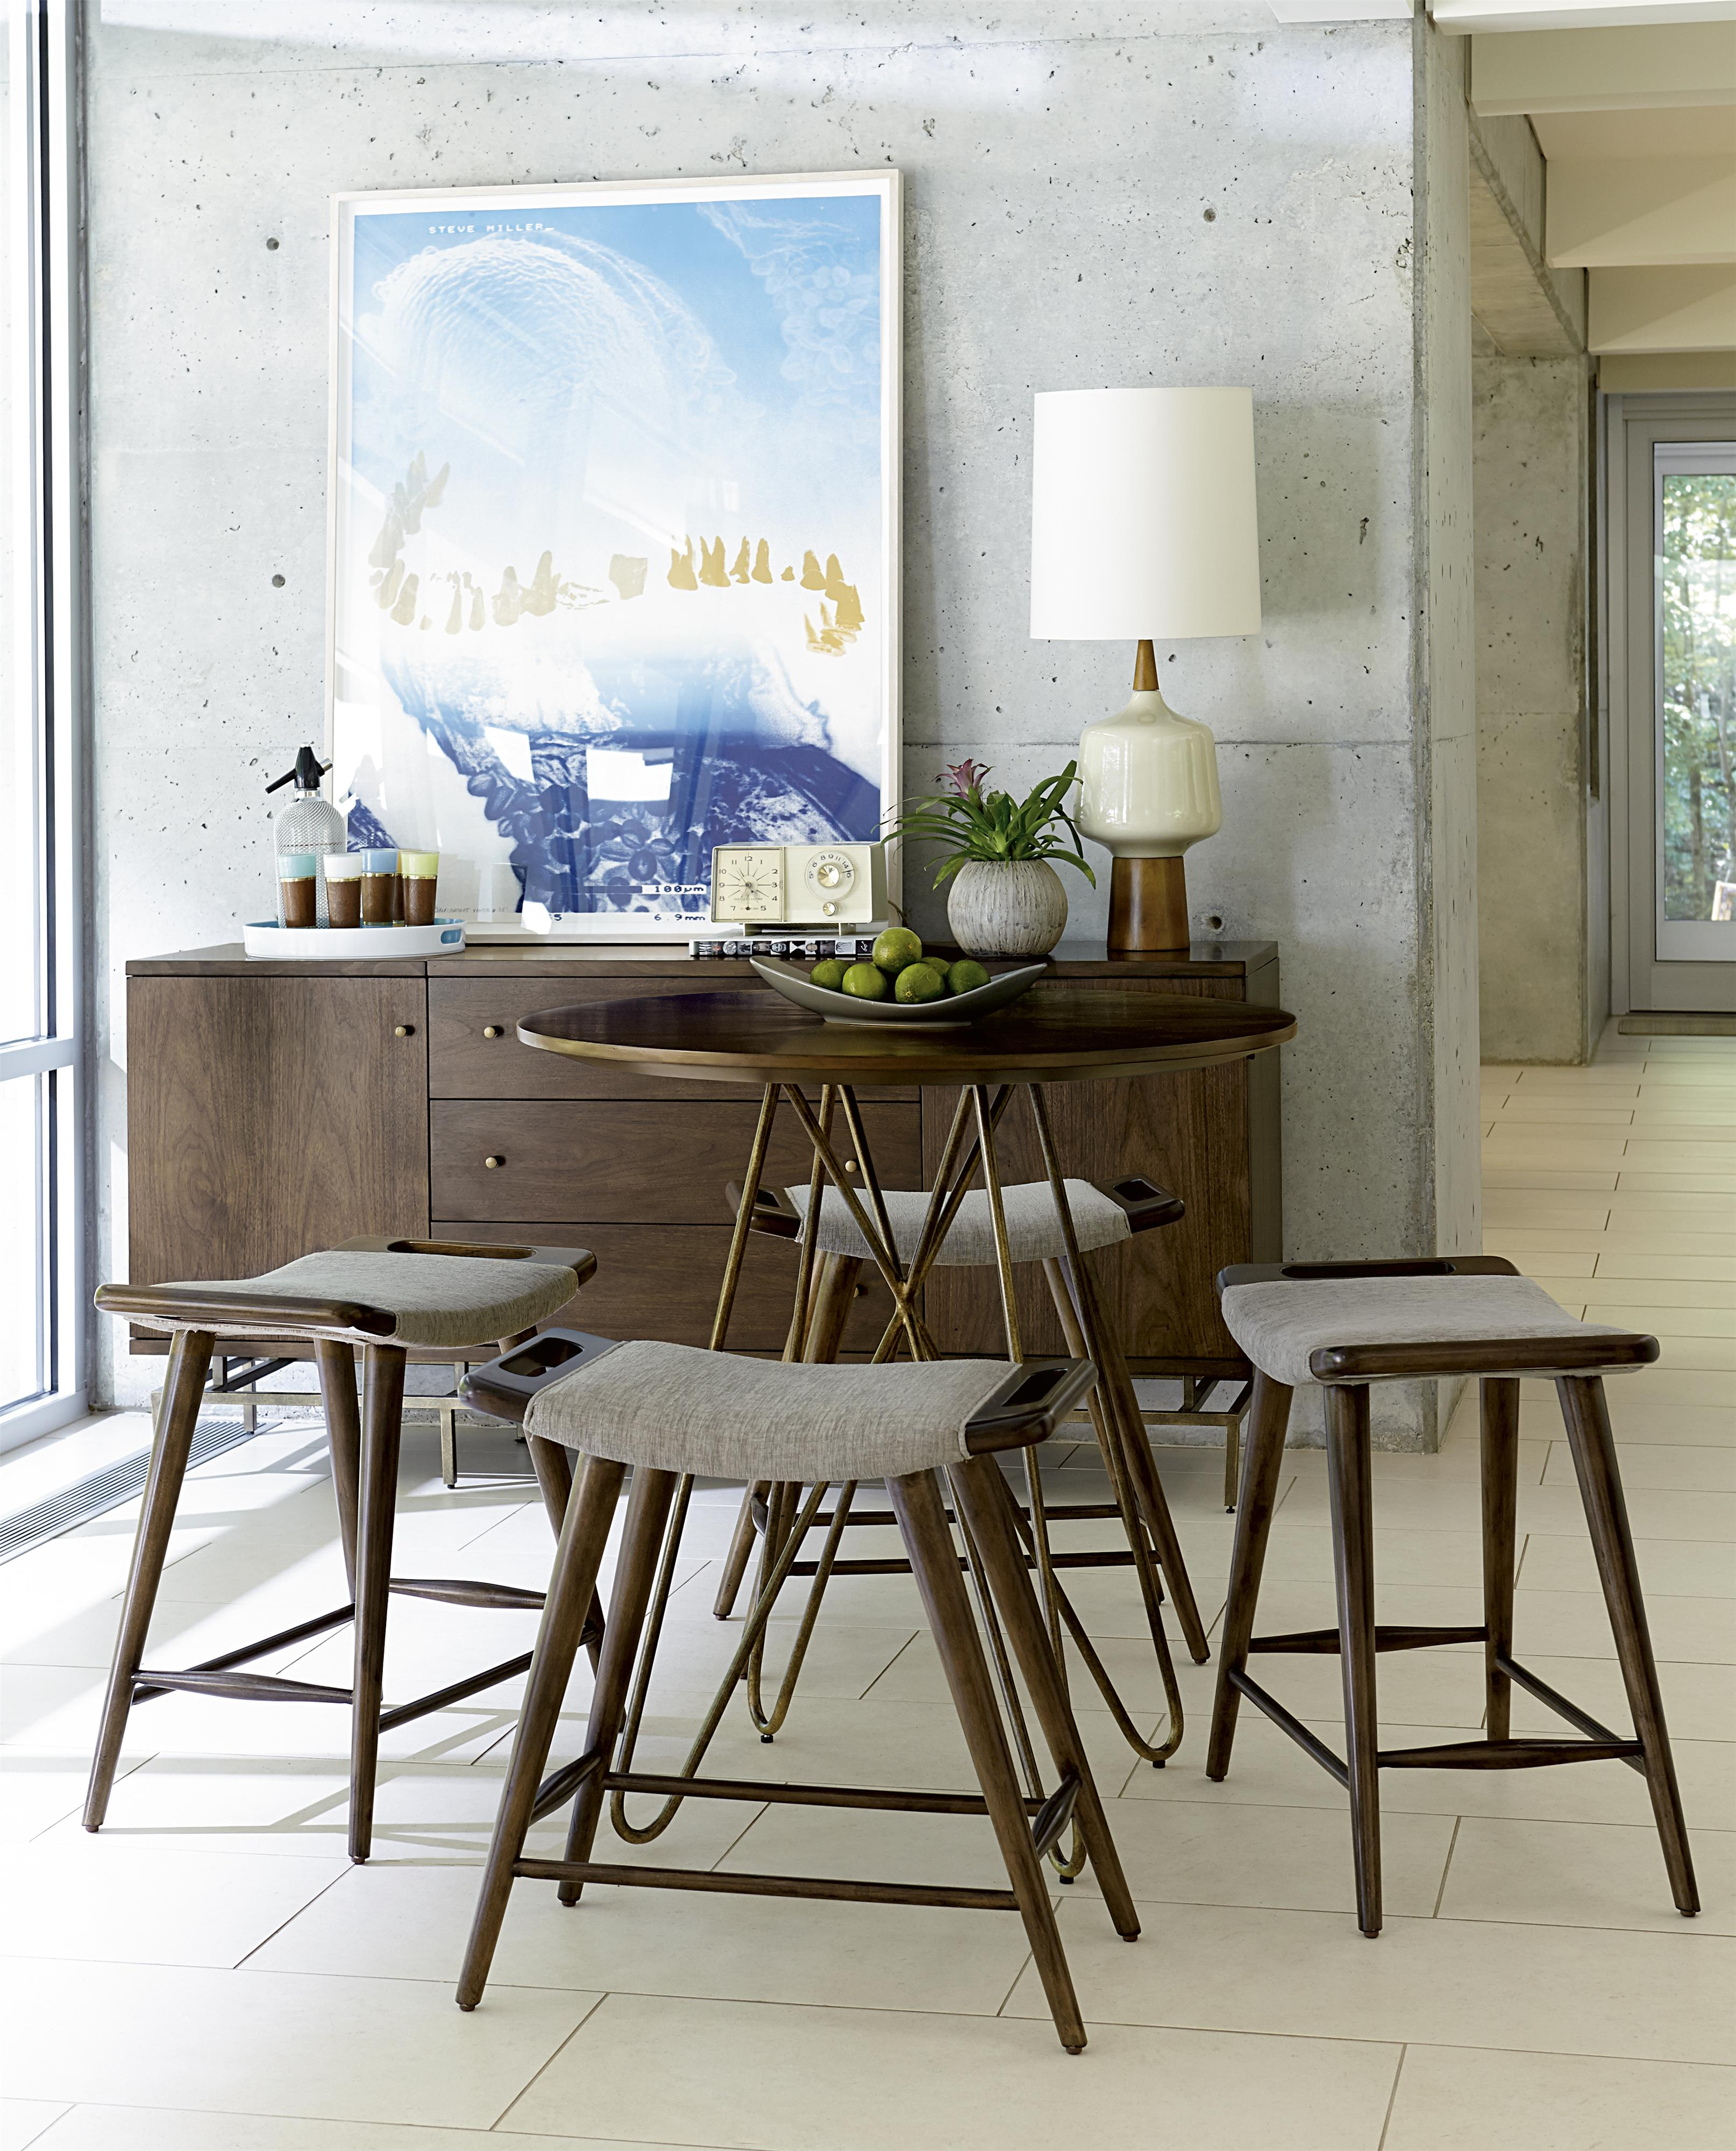 Belfort Signature Urban Treasures Casual Dining Room Group - Item Number: 223000-1812 Dining Room Group 2